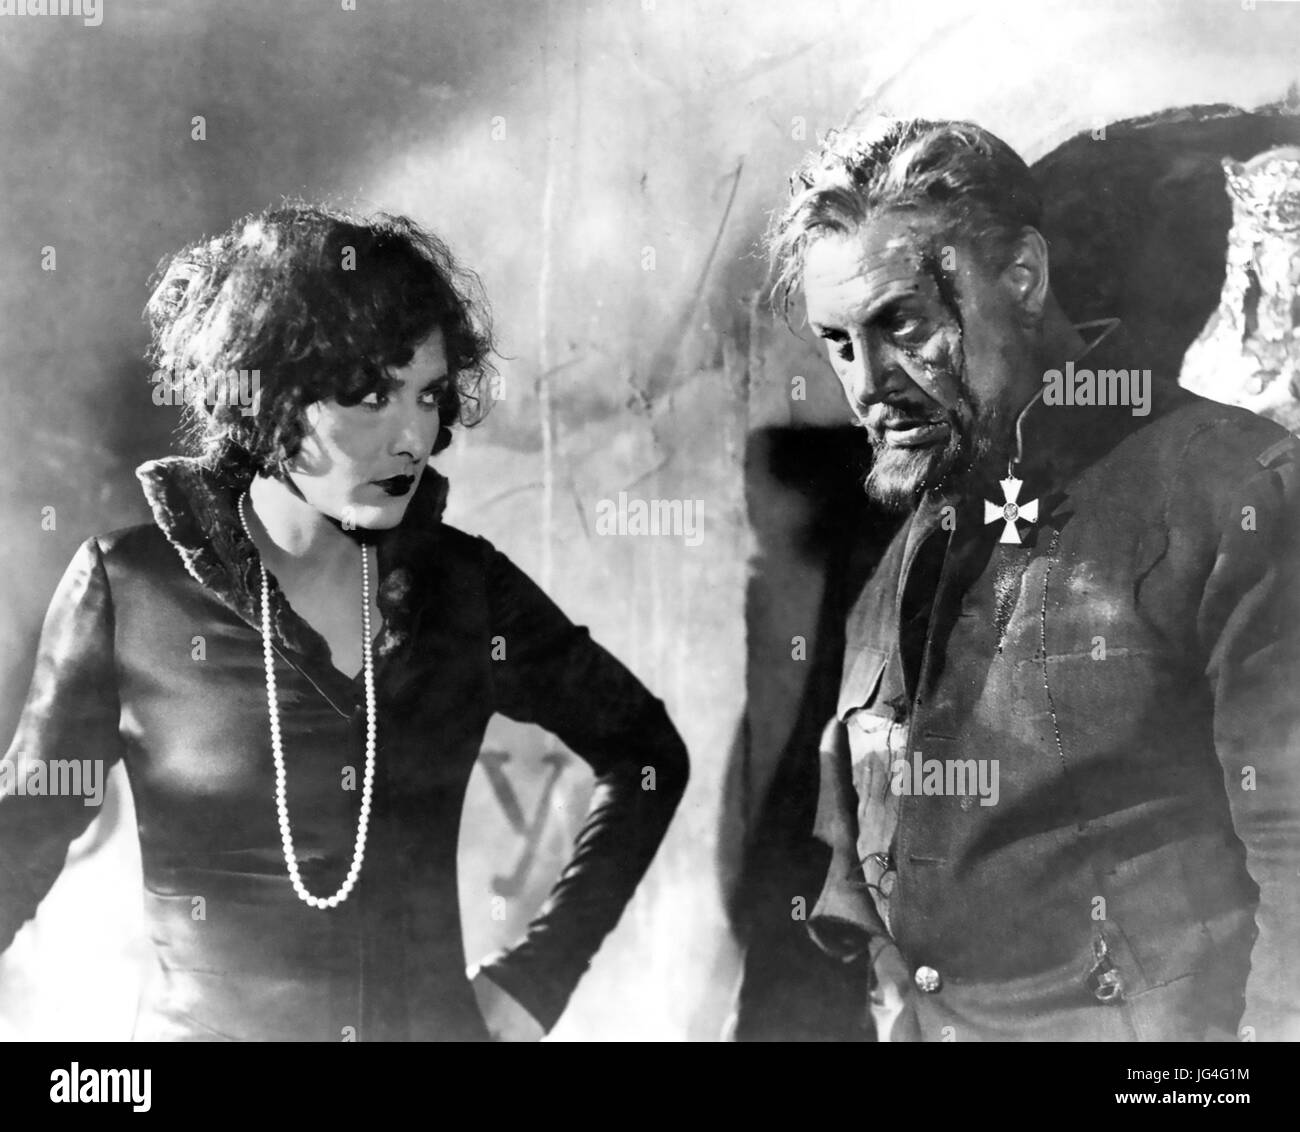 THE LAST COMMAND 1928 Paramount Pictures film with Emil Jannings and Evelyn Brent - Stock Image